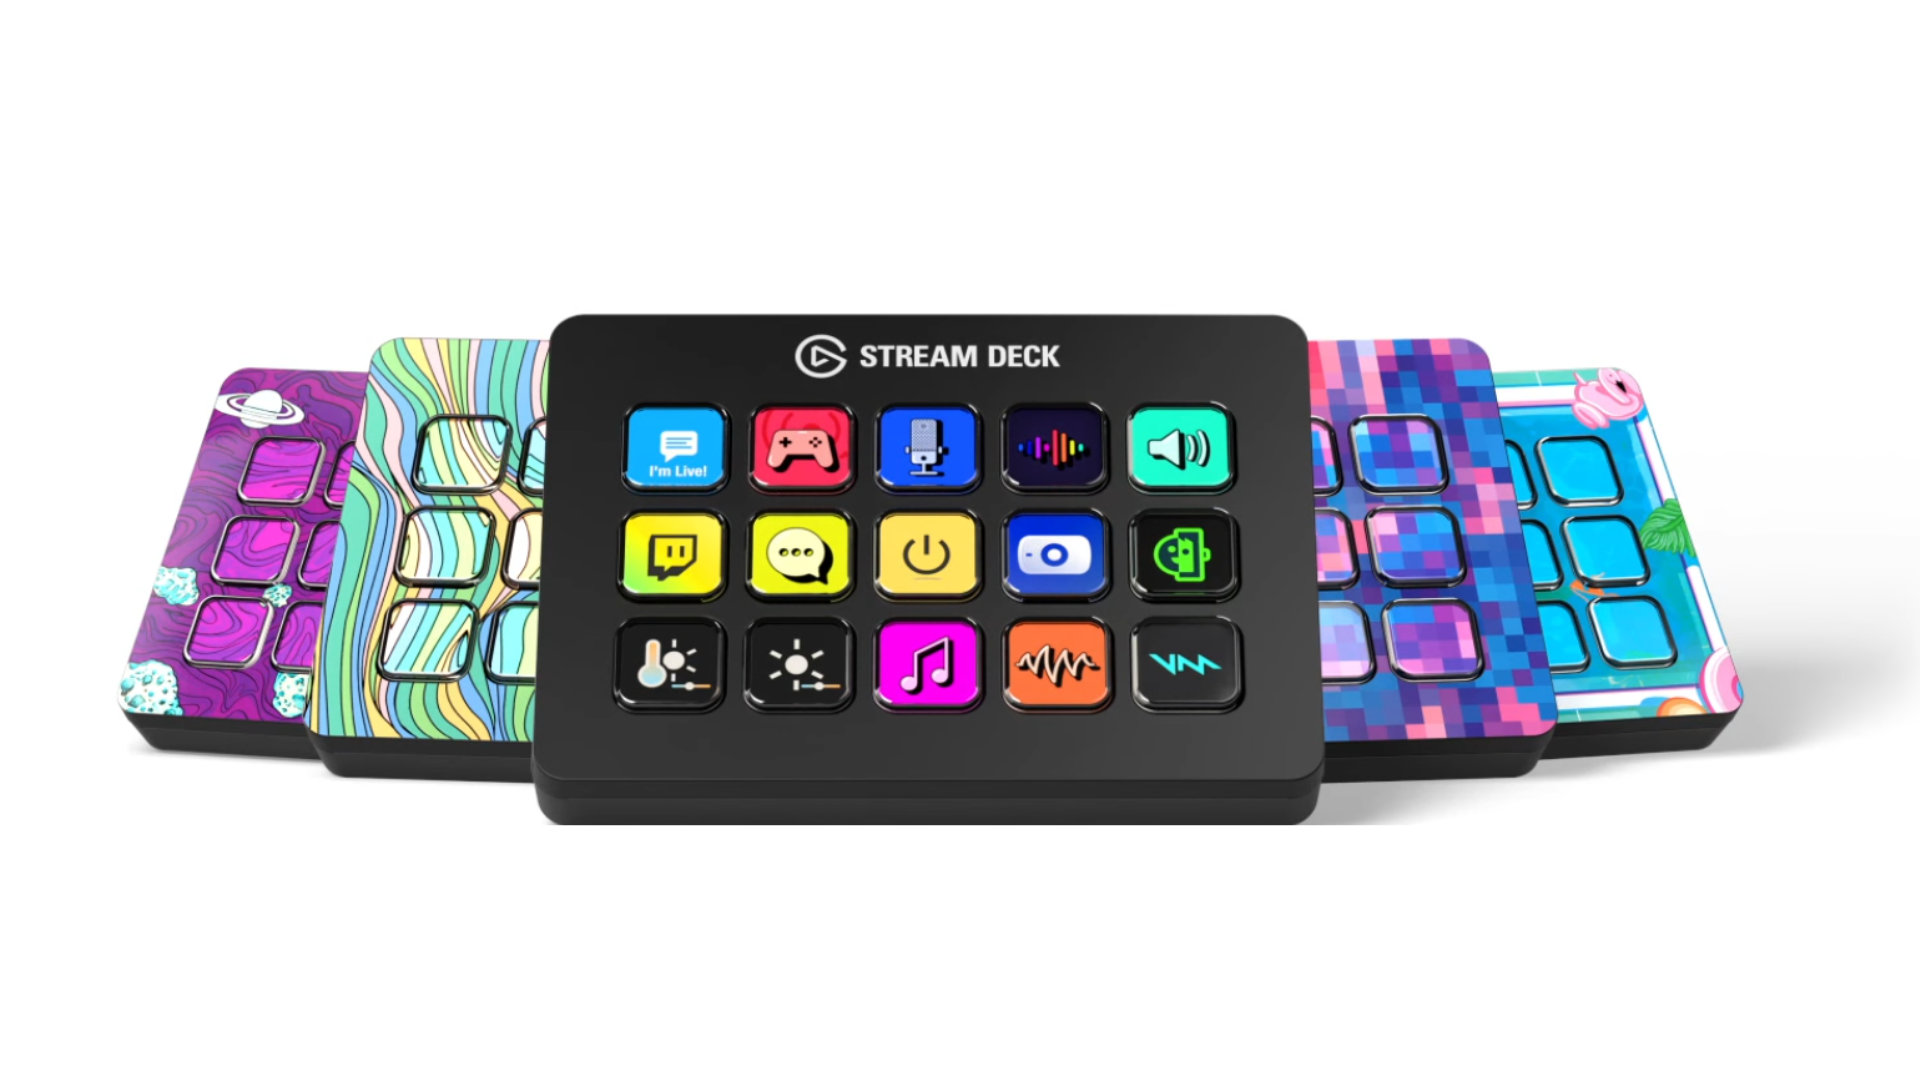 Elgato's new Stream Deck proves everything needs detachable USB cables